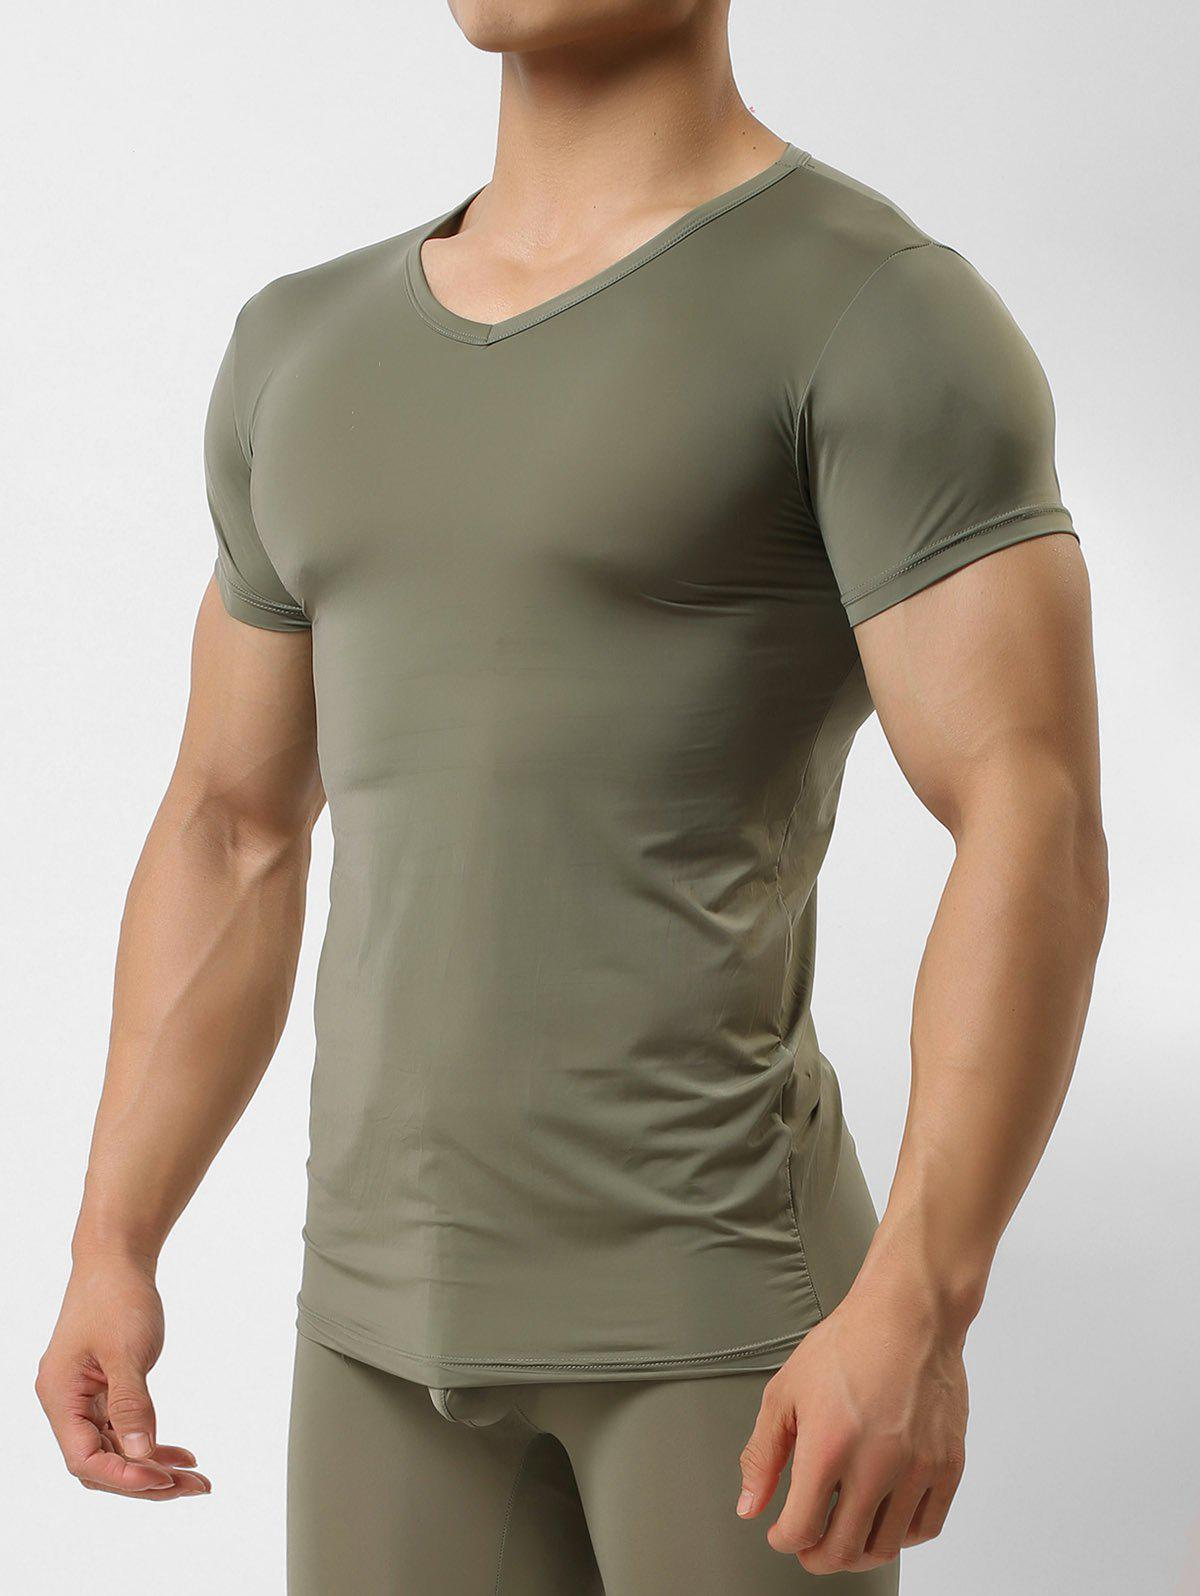 Sale Ultrathin Solid Color Short Sleeves T-shirt